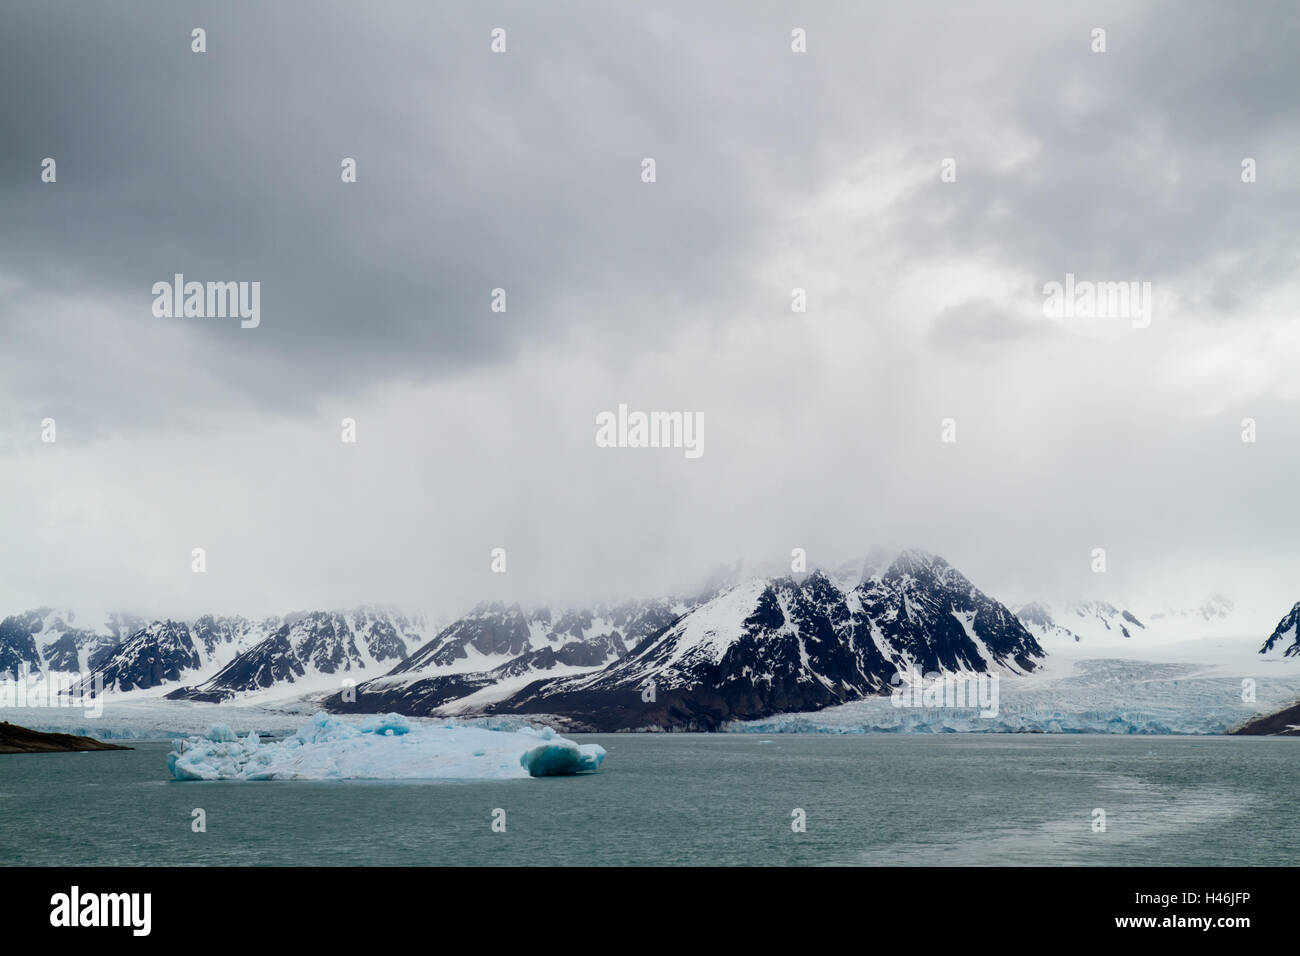 svalbard cruise aroung the glaciers of island - Stock Image